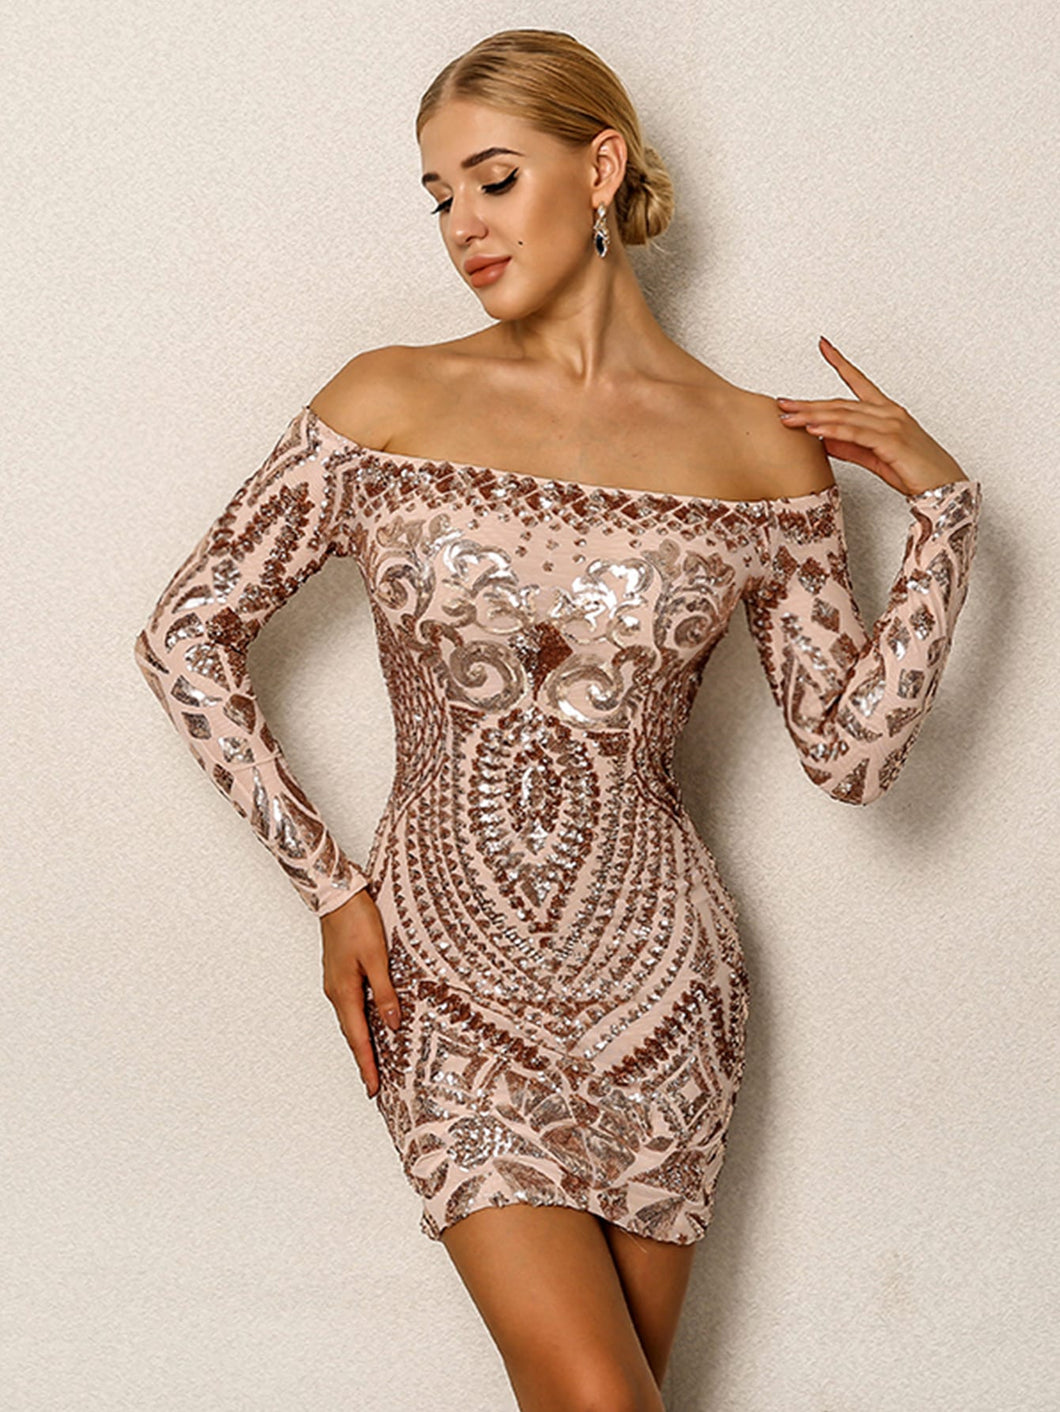 DRESS Sequin Cluster Off Shoulder Bodycon Dress - EK CHIC